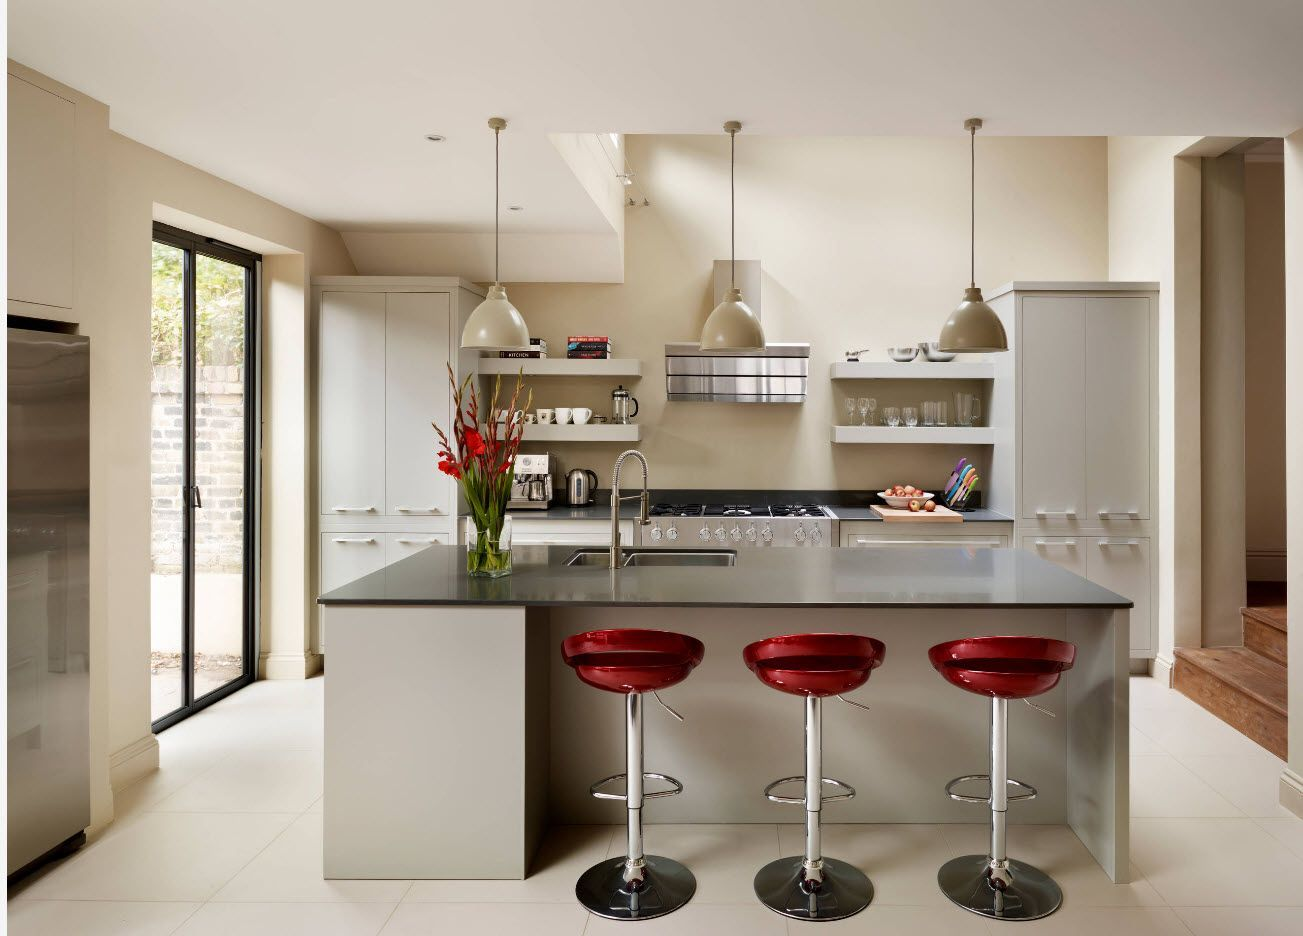 Red seats of bar chairs and steel legs at the glass countertop of the kitchen island